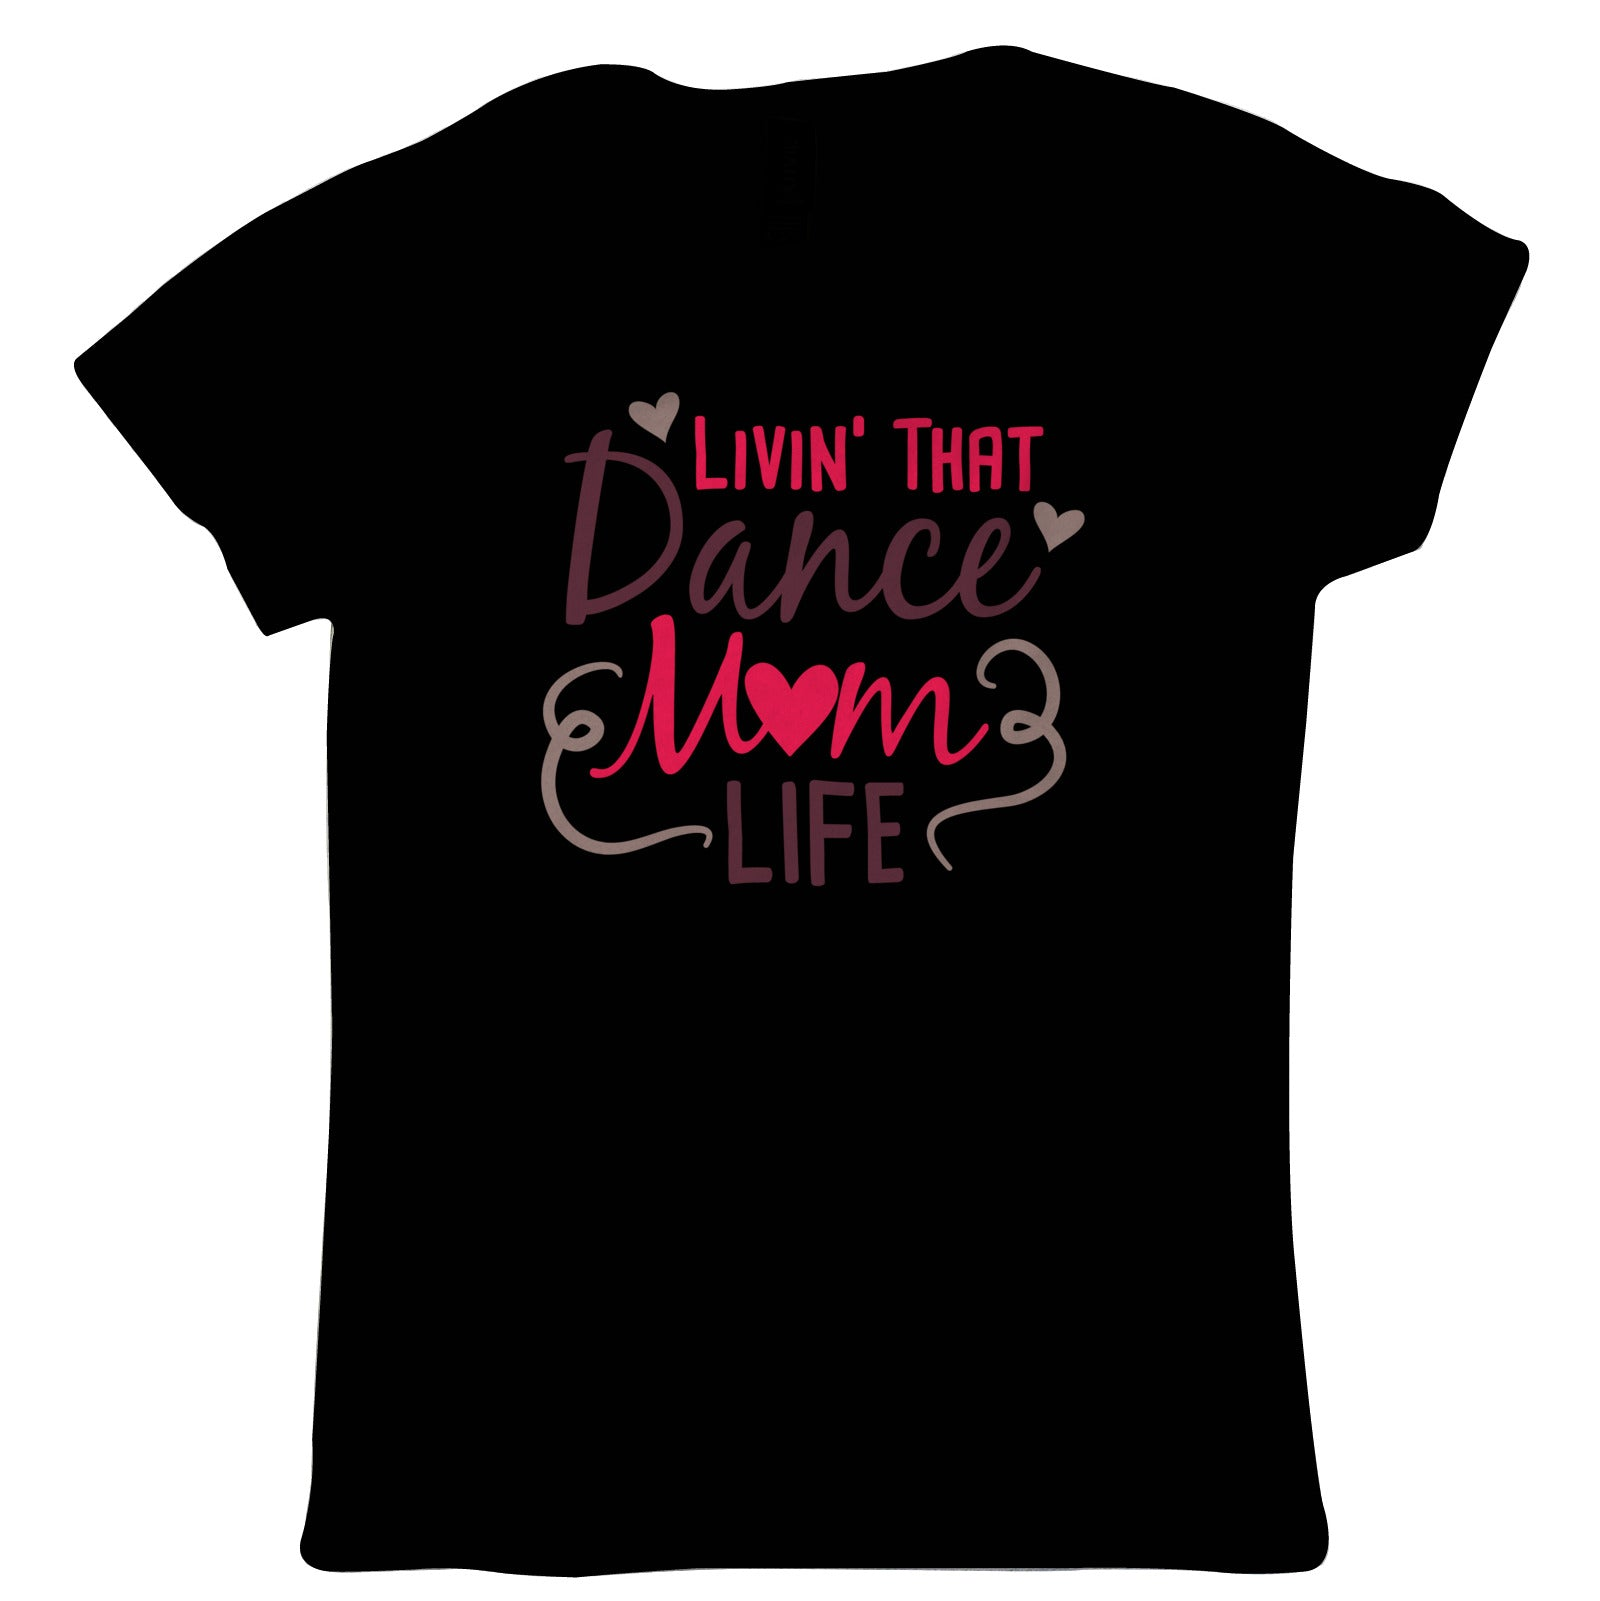 Livin' That Dance Mom Life Womens T Shirt | Mothers Day Best Mum Top Parent Family Mumlife Dance Mom Cheerleader Support Coach | Birthday Christmas Gift Present Her Wife Mother Partner Fiance Sister